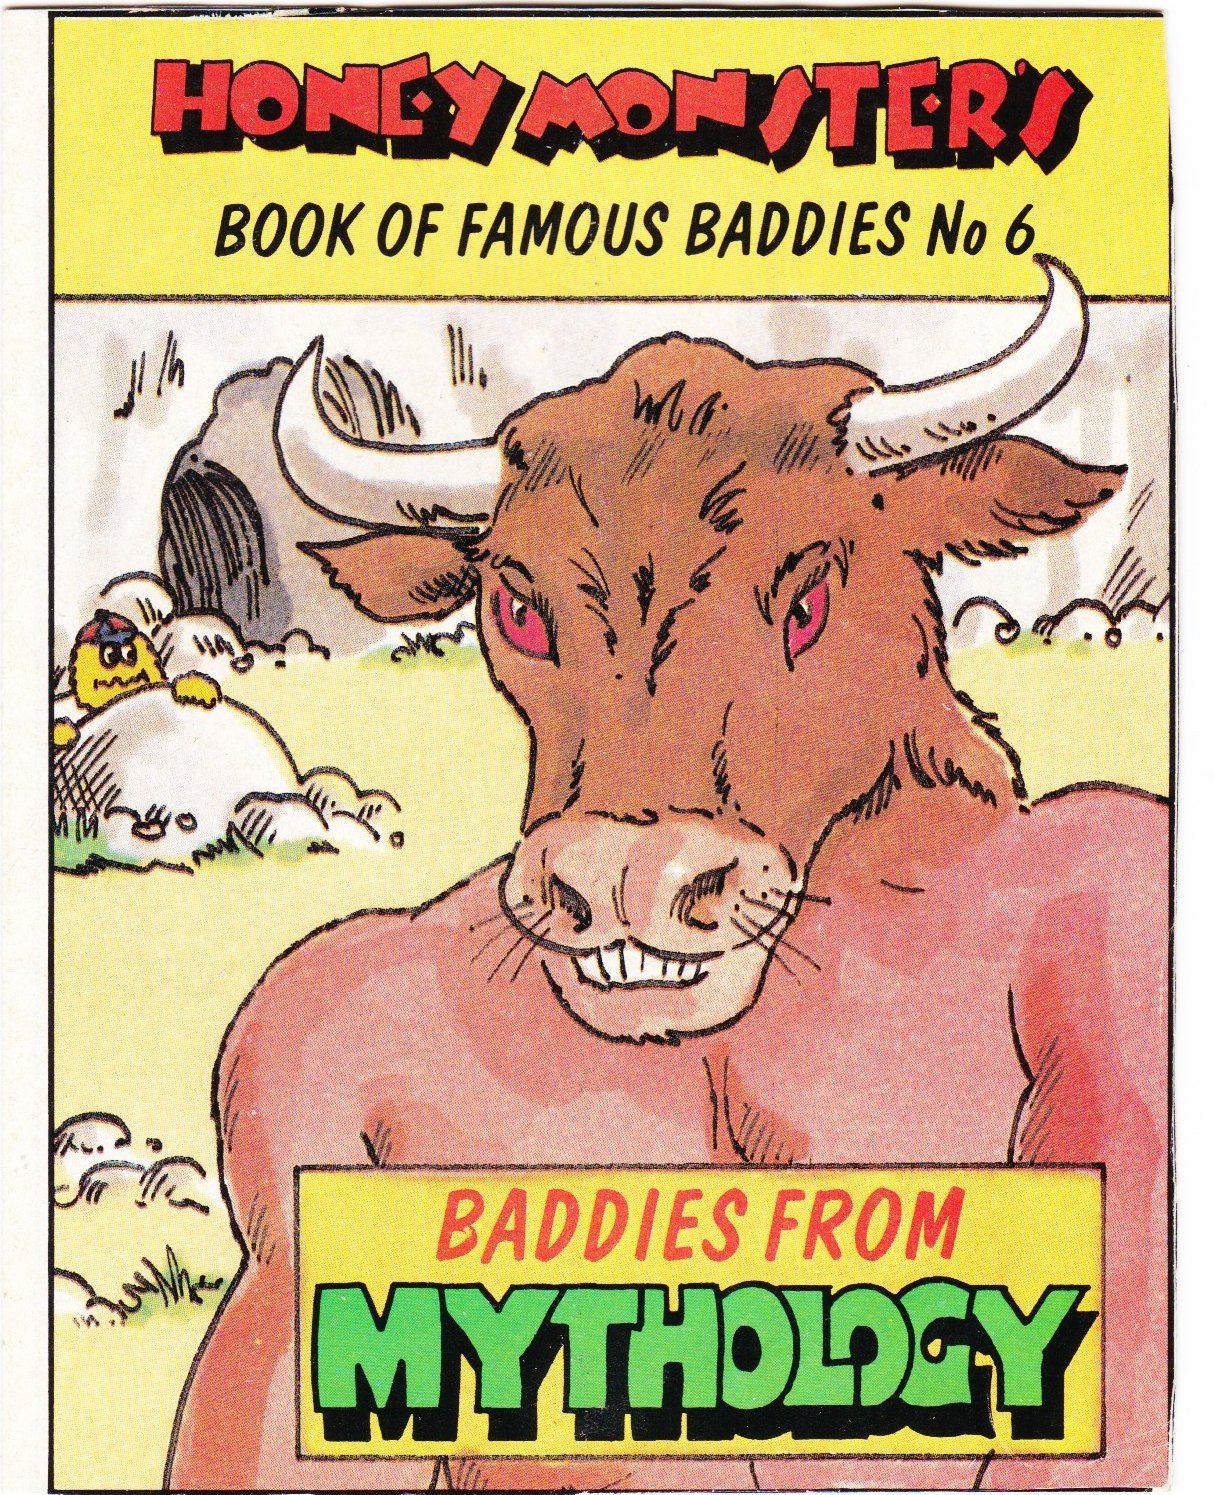 1986 Sugar Puffs Book of Famous Baddies No 6 Mythological (1)